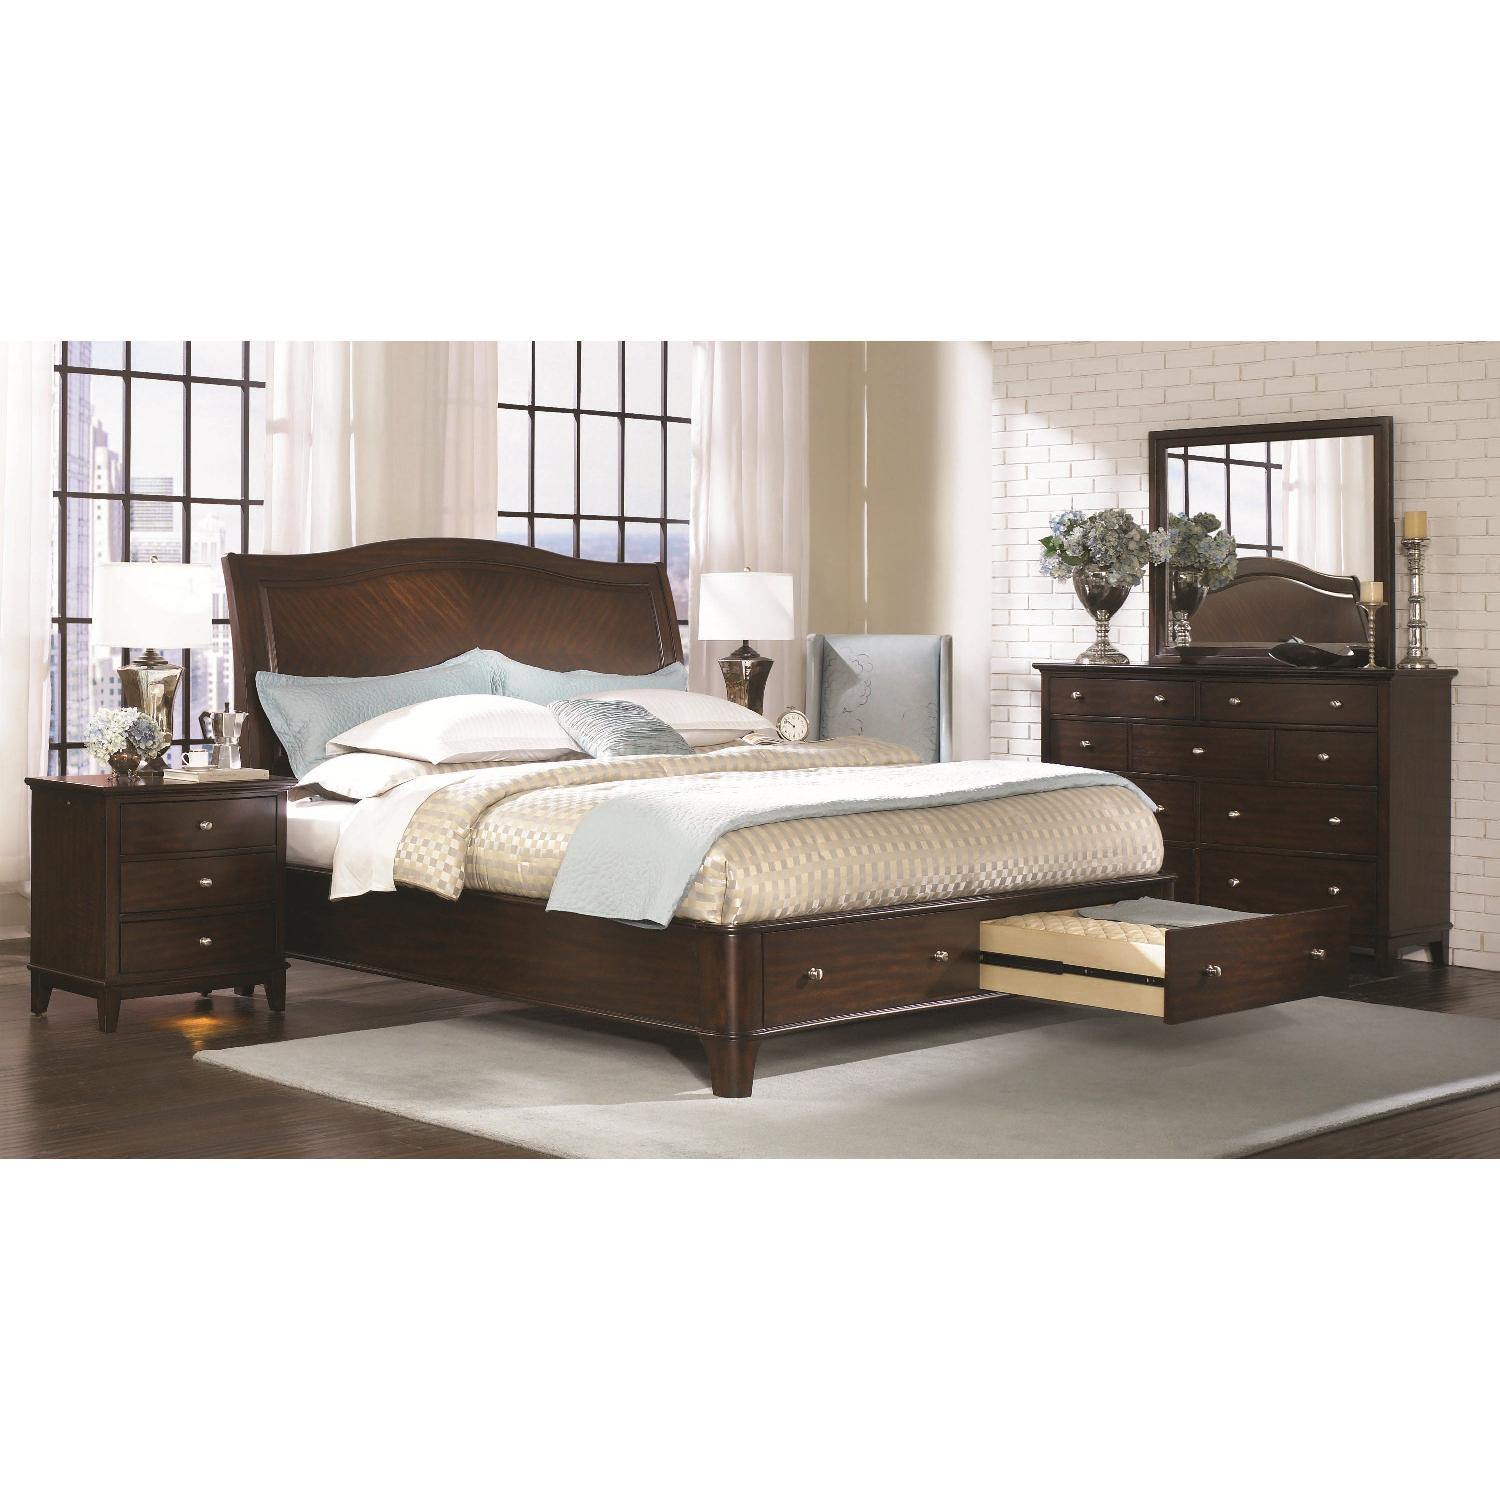 Aspenhome Lincoln Park Queen Sleigh Bed w/ Storage-4